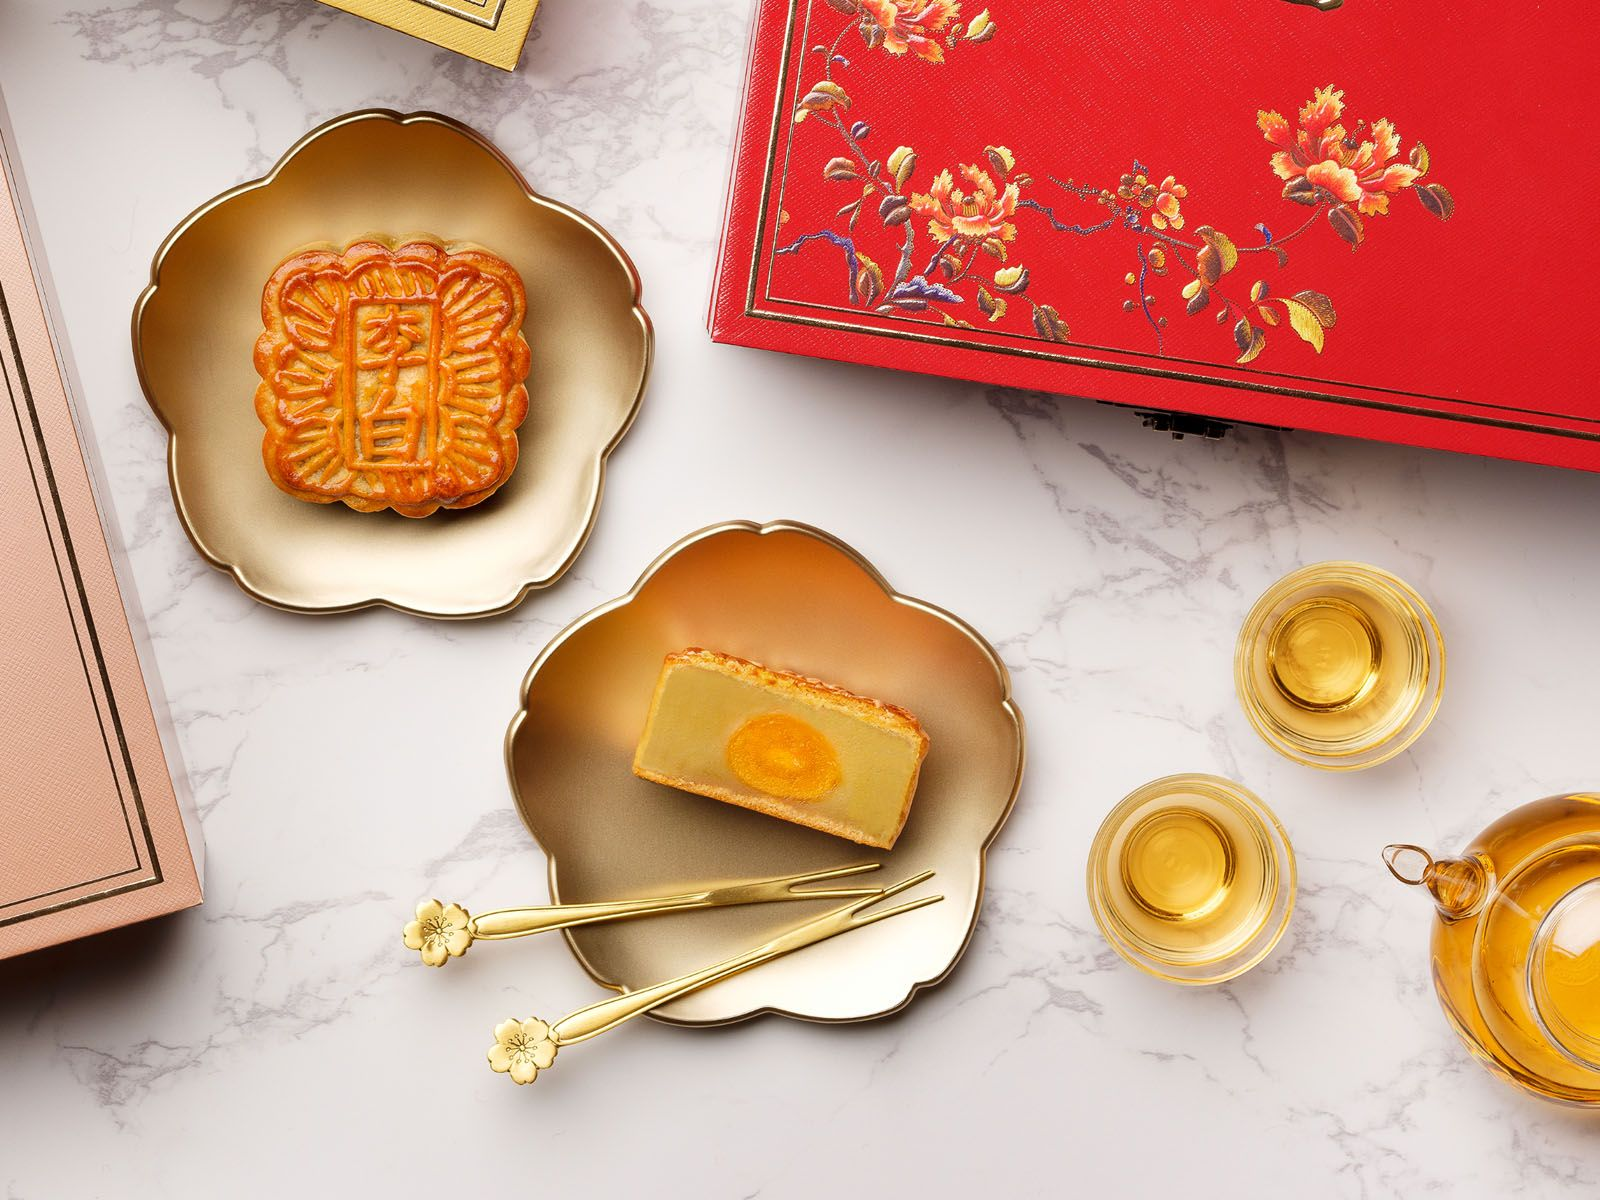 Mid-Autumn Festival 2020: The Most Popular Baked Mooncakes In Singapore